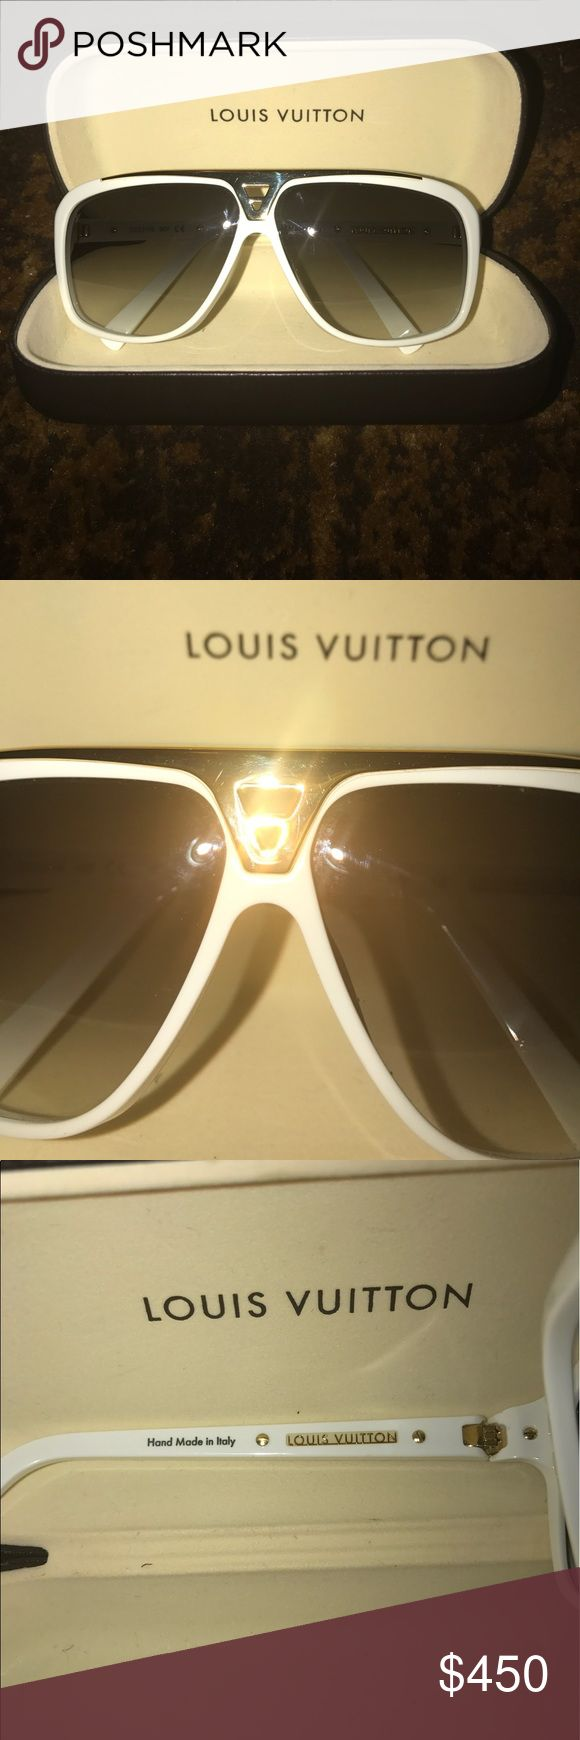 Louis Vuitton Evidence sunglasses Great condition ! Unfortunately No dust bag . Very minuscule scratches on gold. Louis Vuitton Accessories Glasses